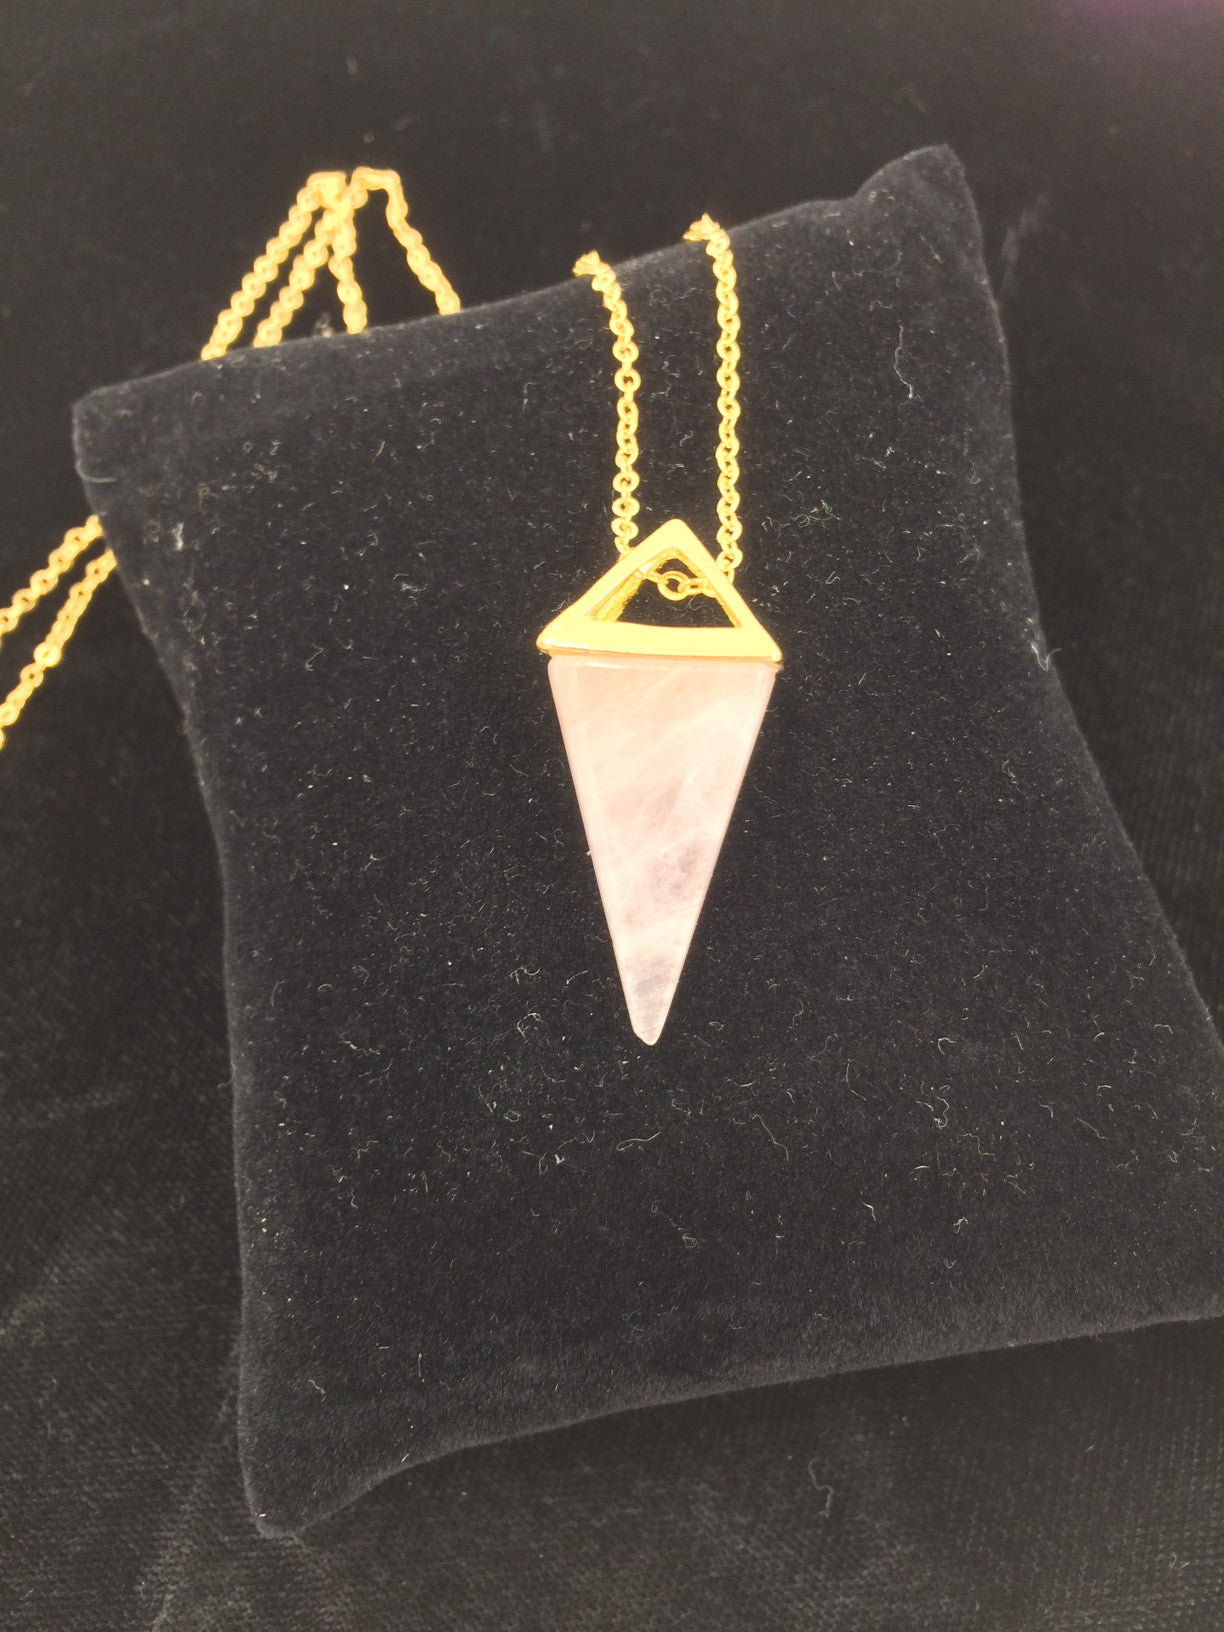 Rose Quartz Crystal Triangular Pyramid Pendant